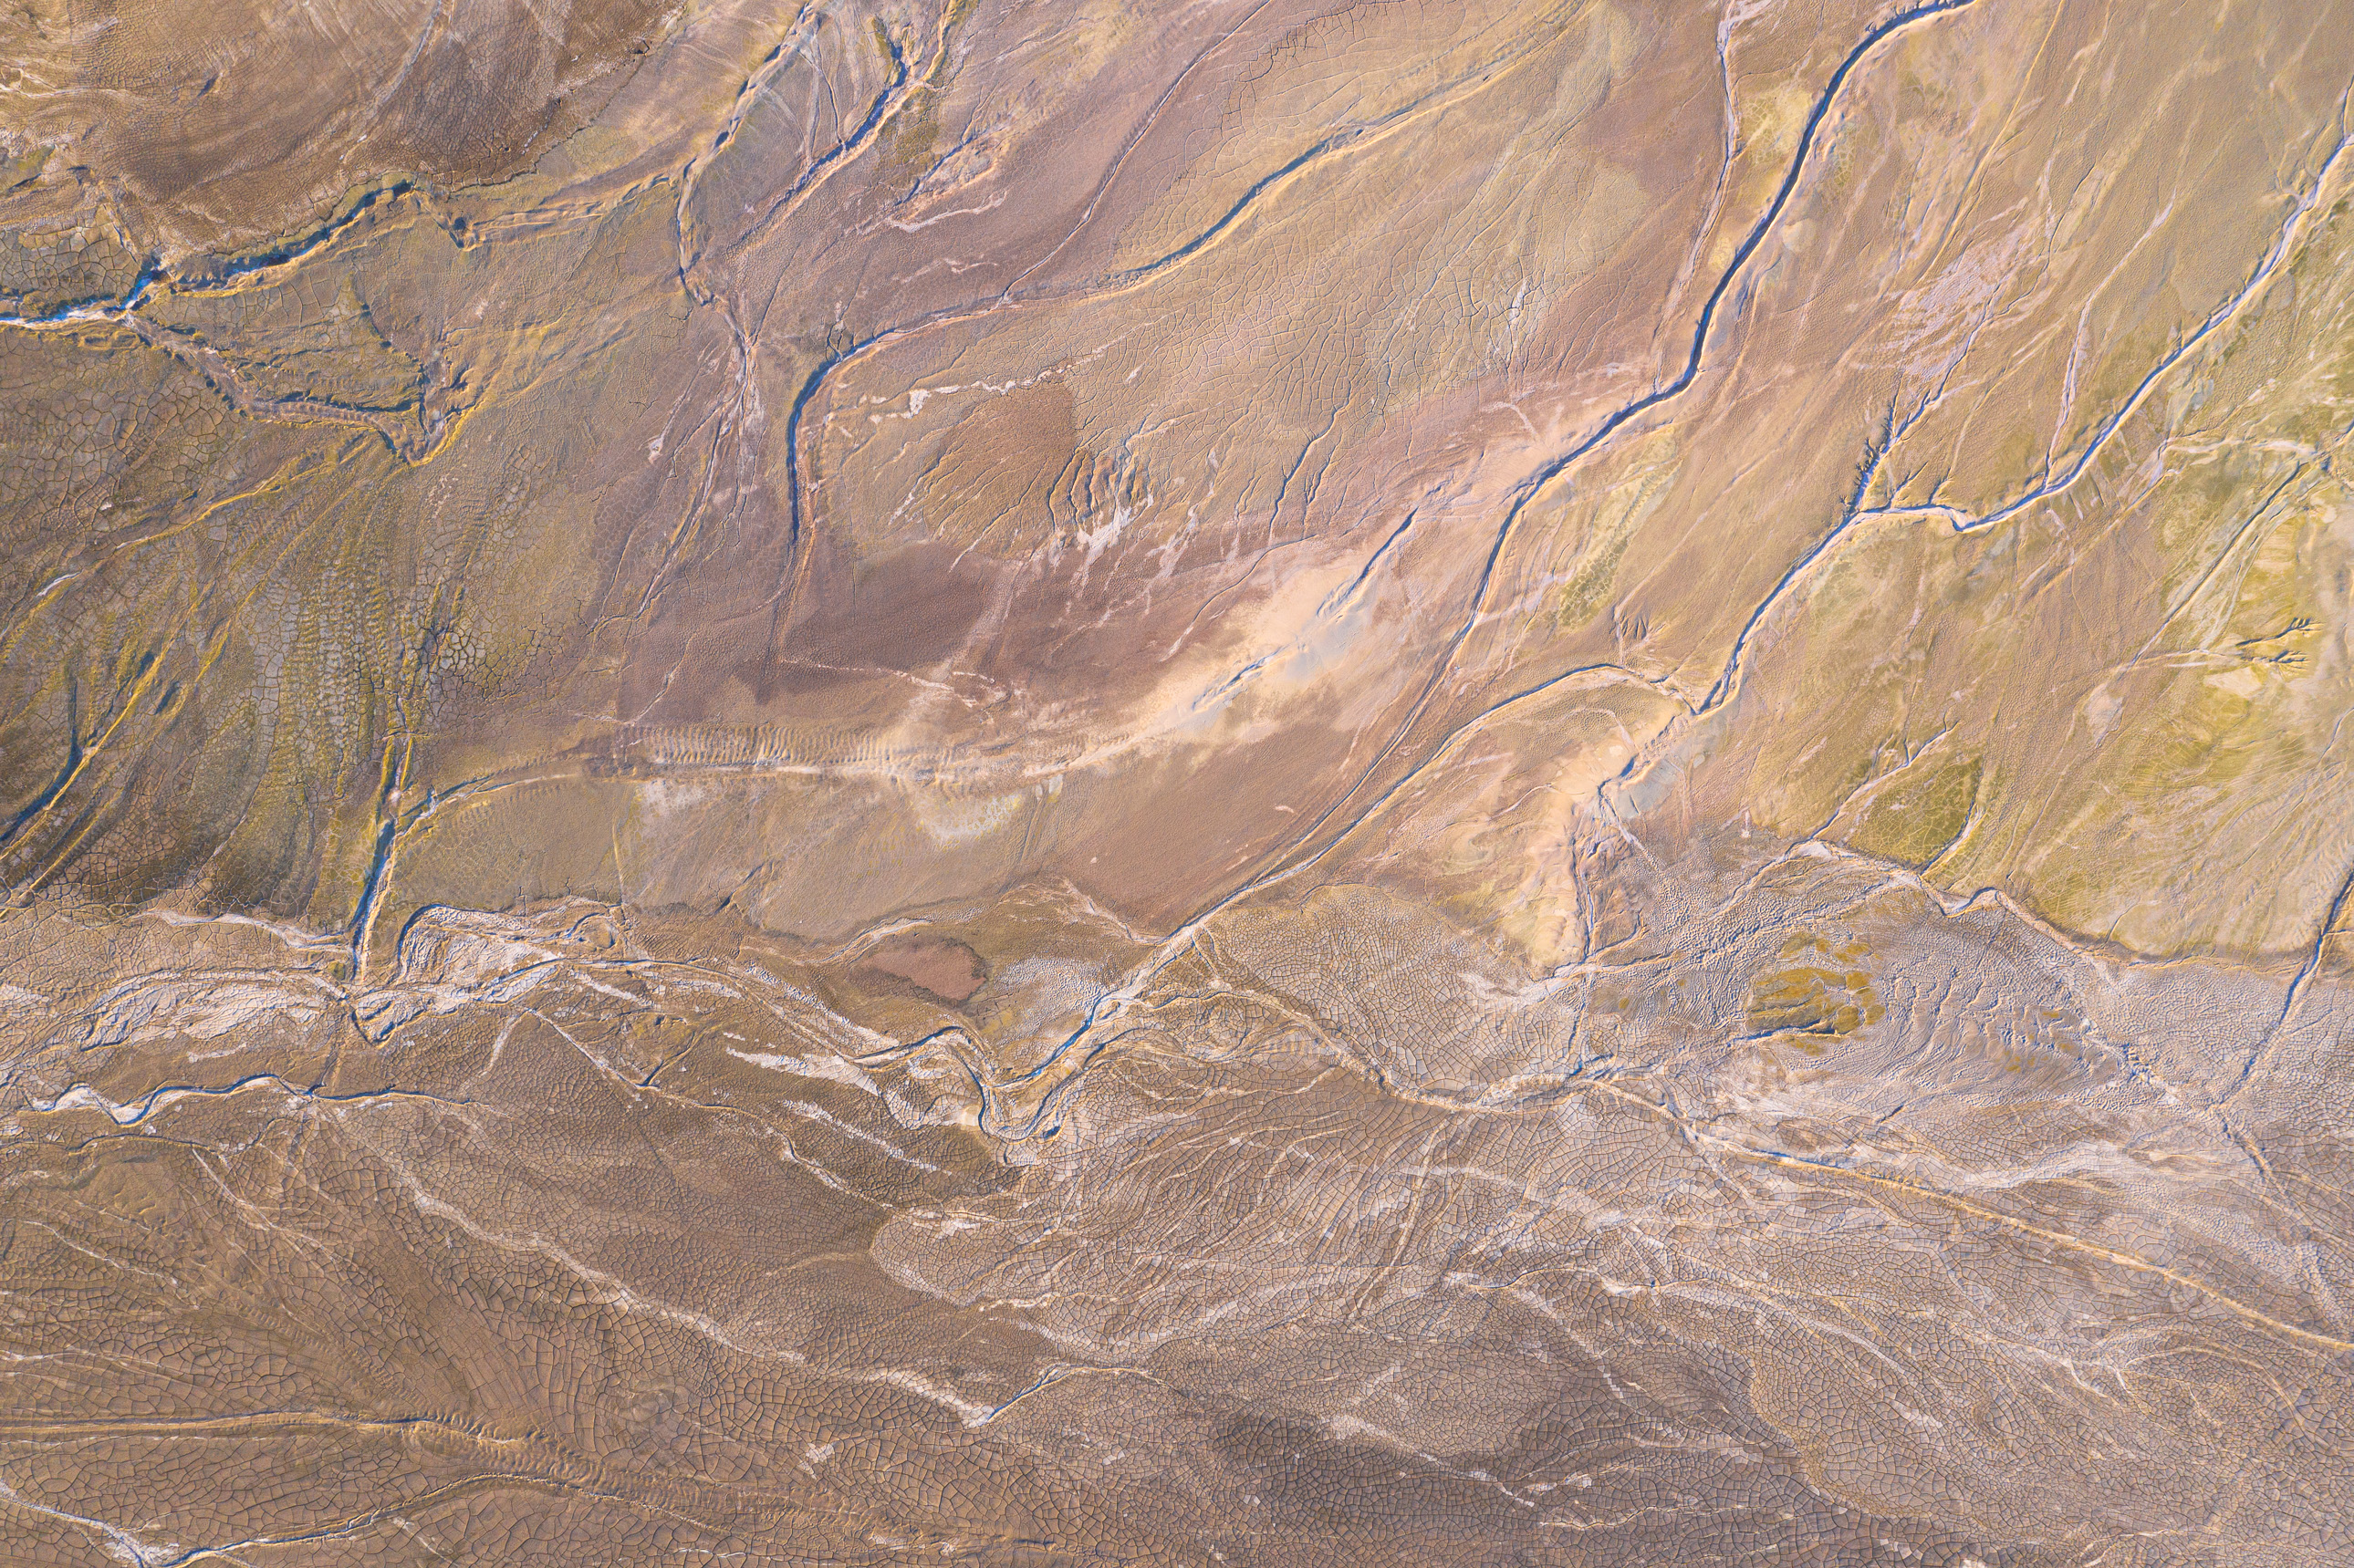 Photograph of a colorful tailings reservoir from a drone